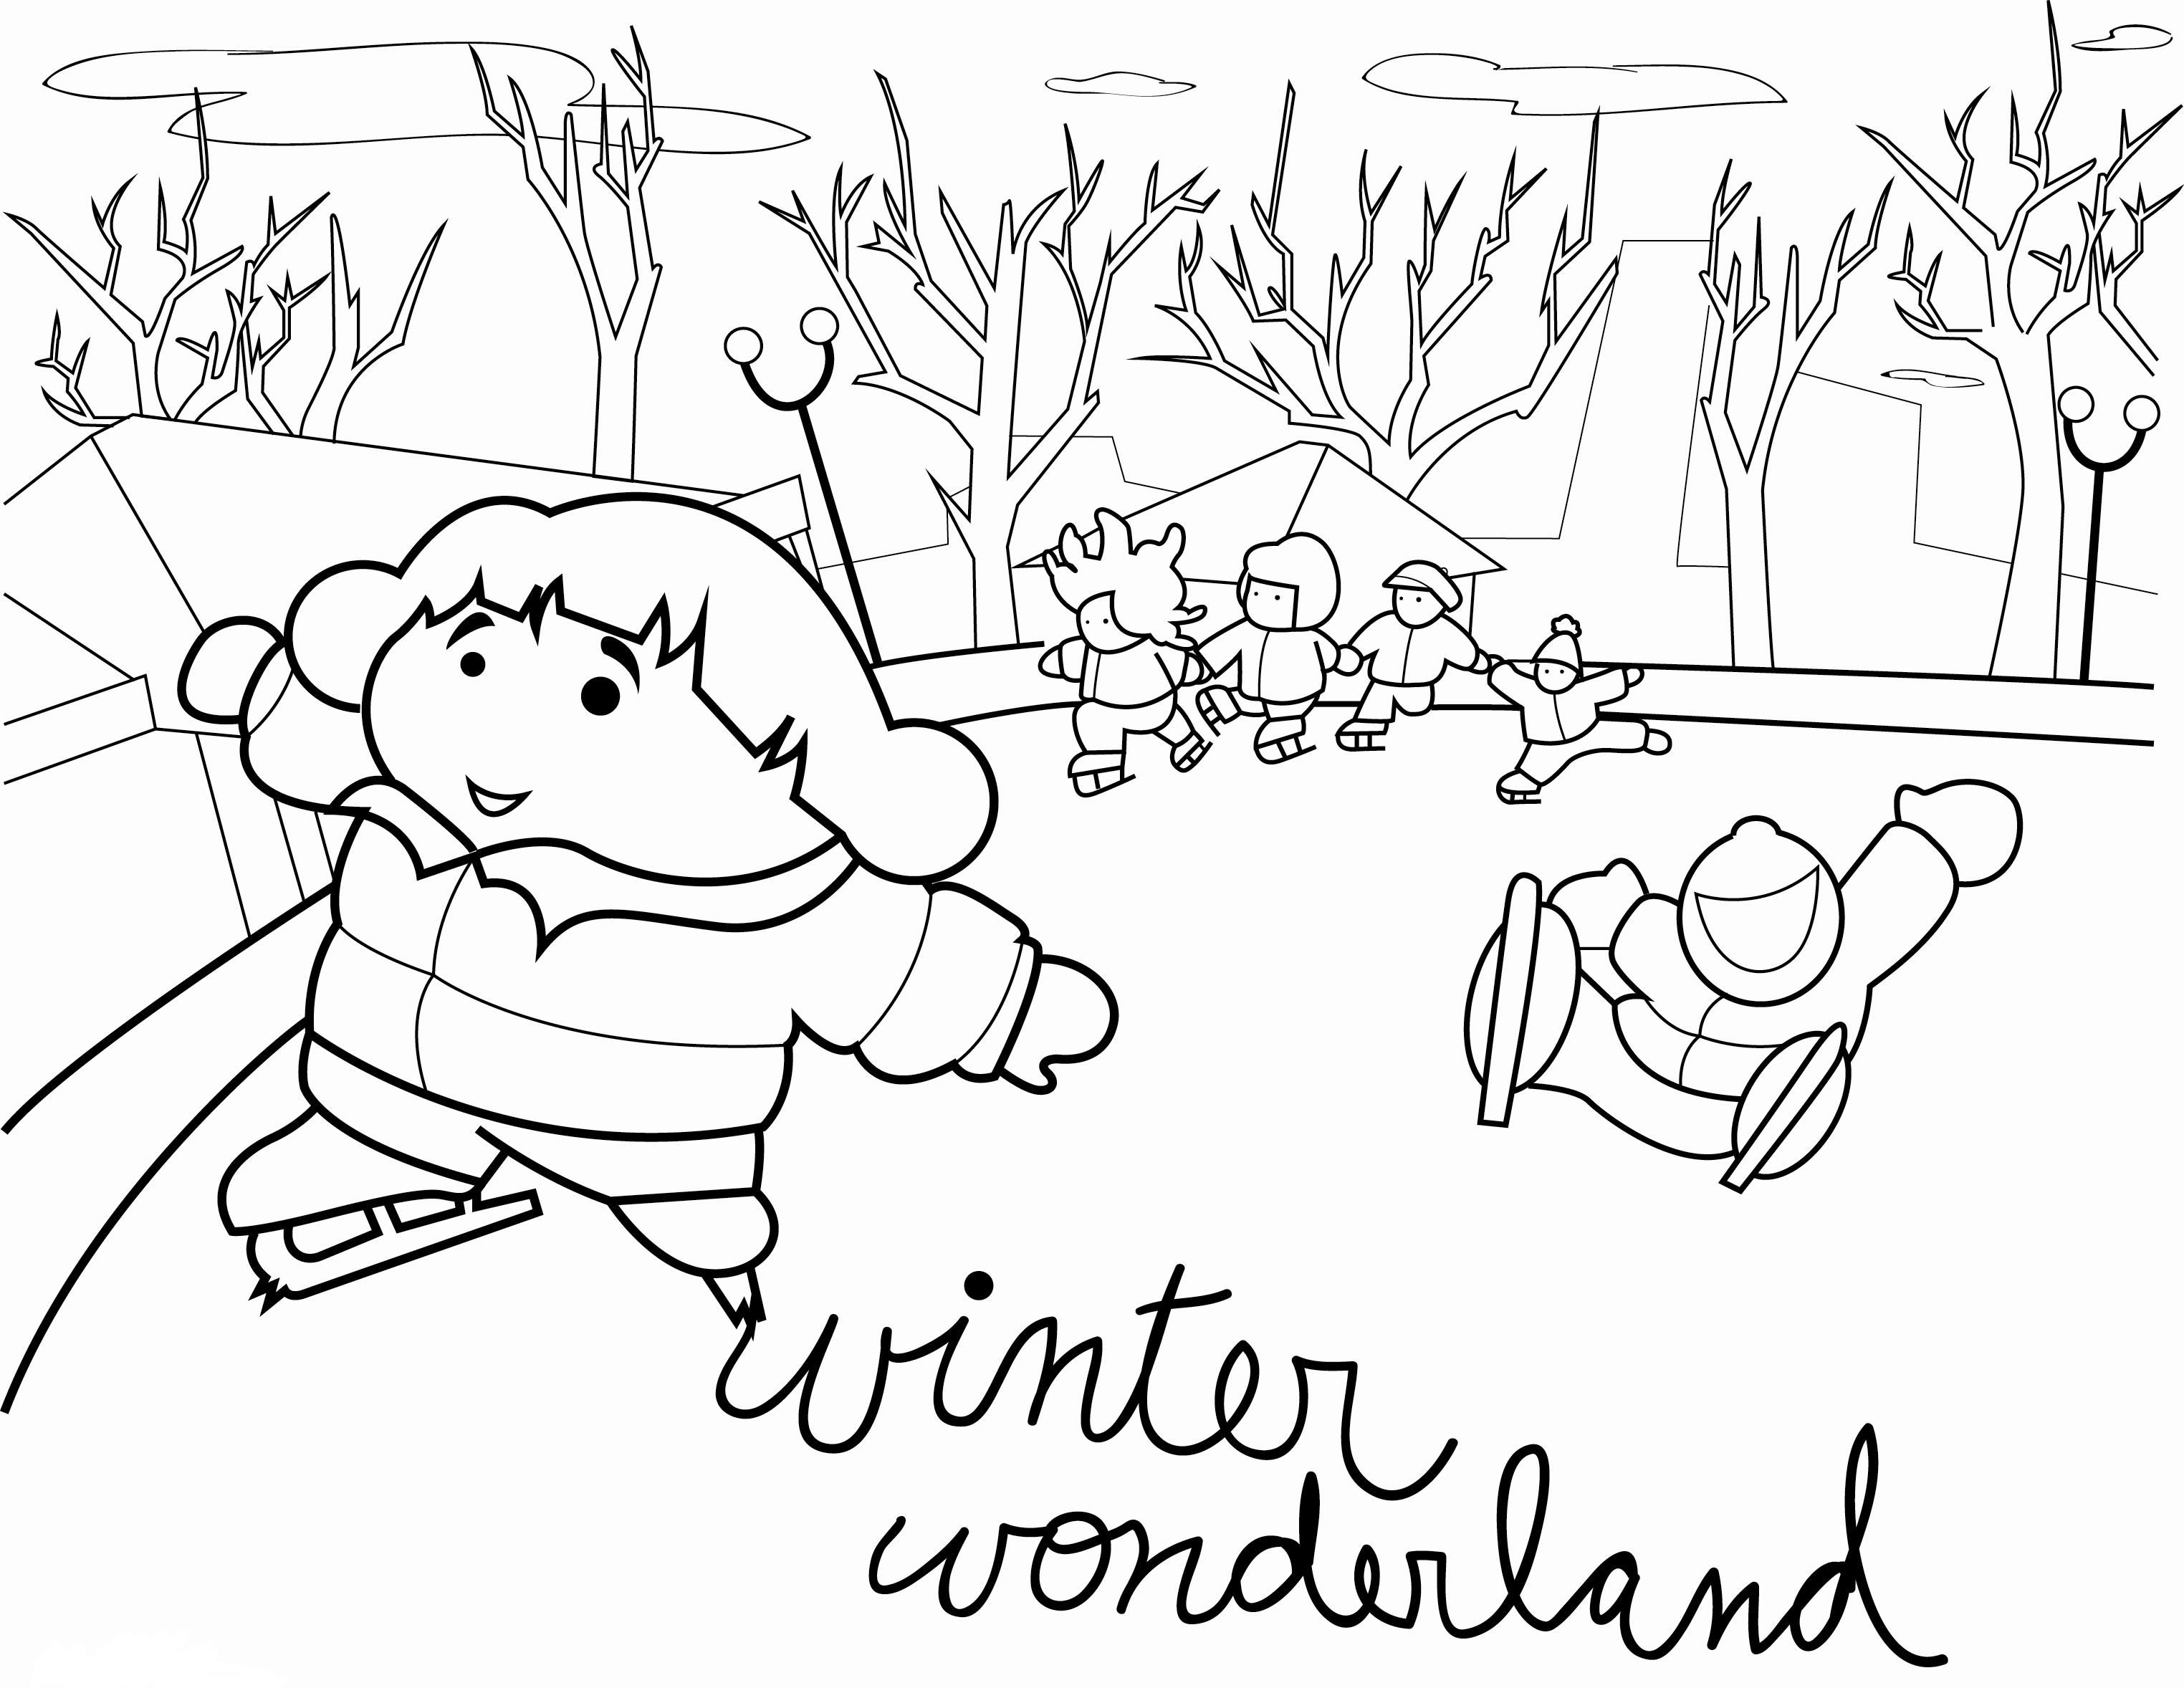 Free Winter Wonderland Coloring Pages